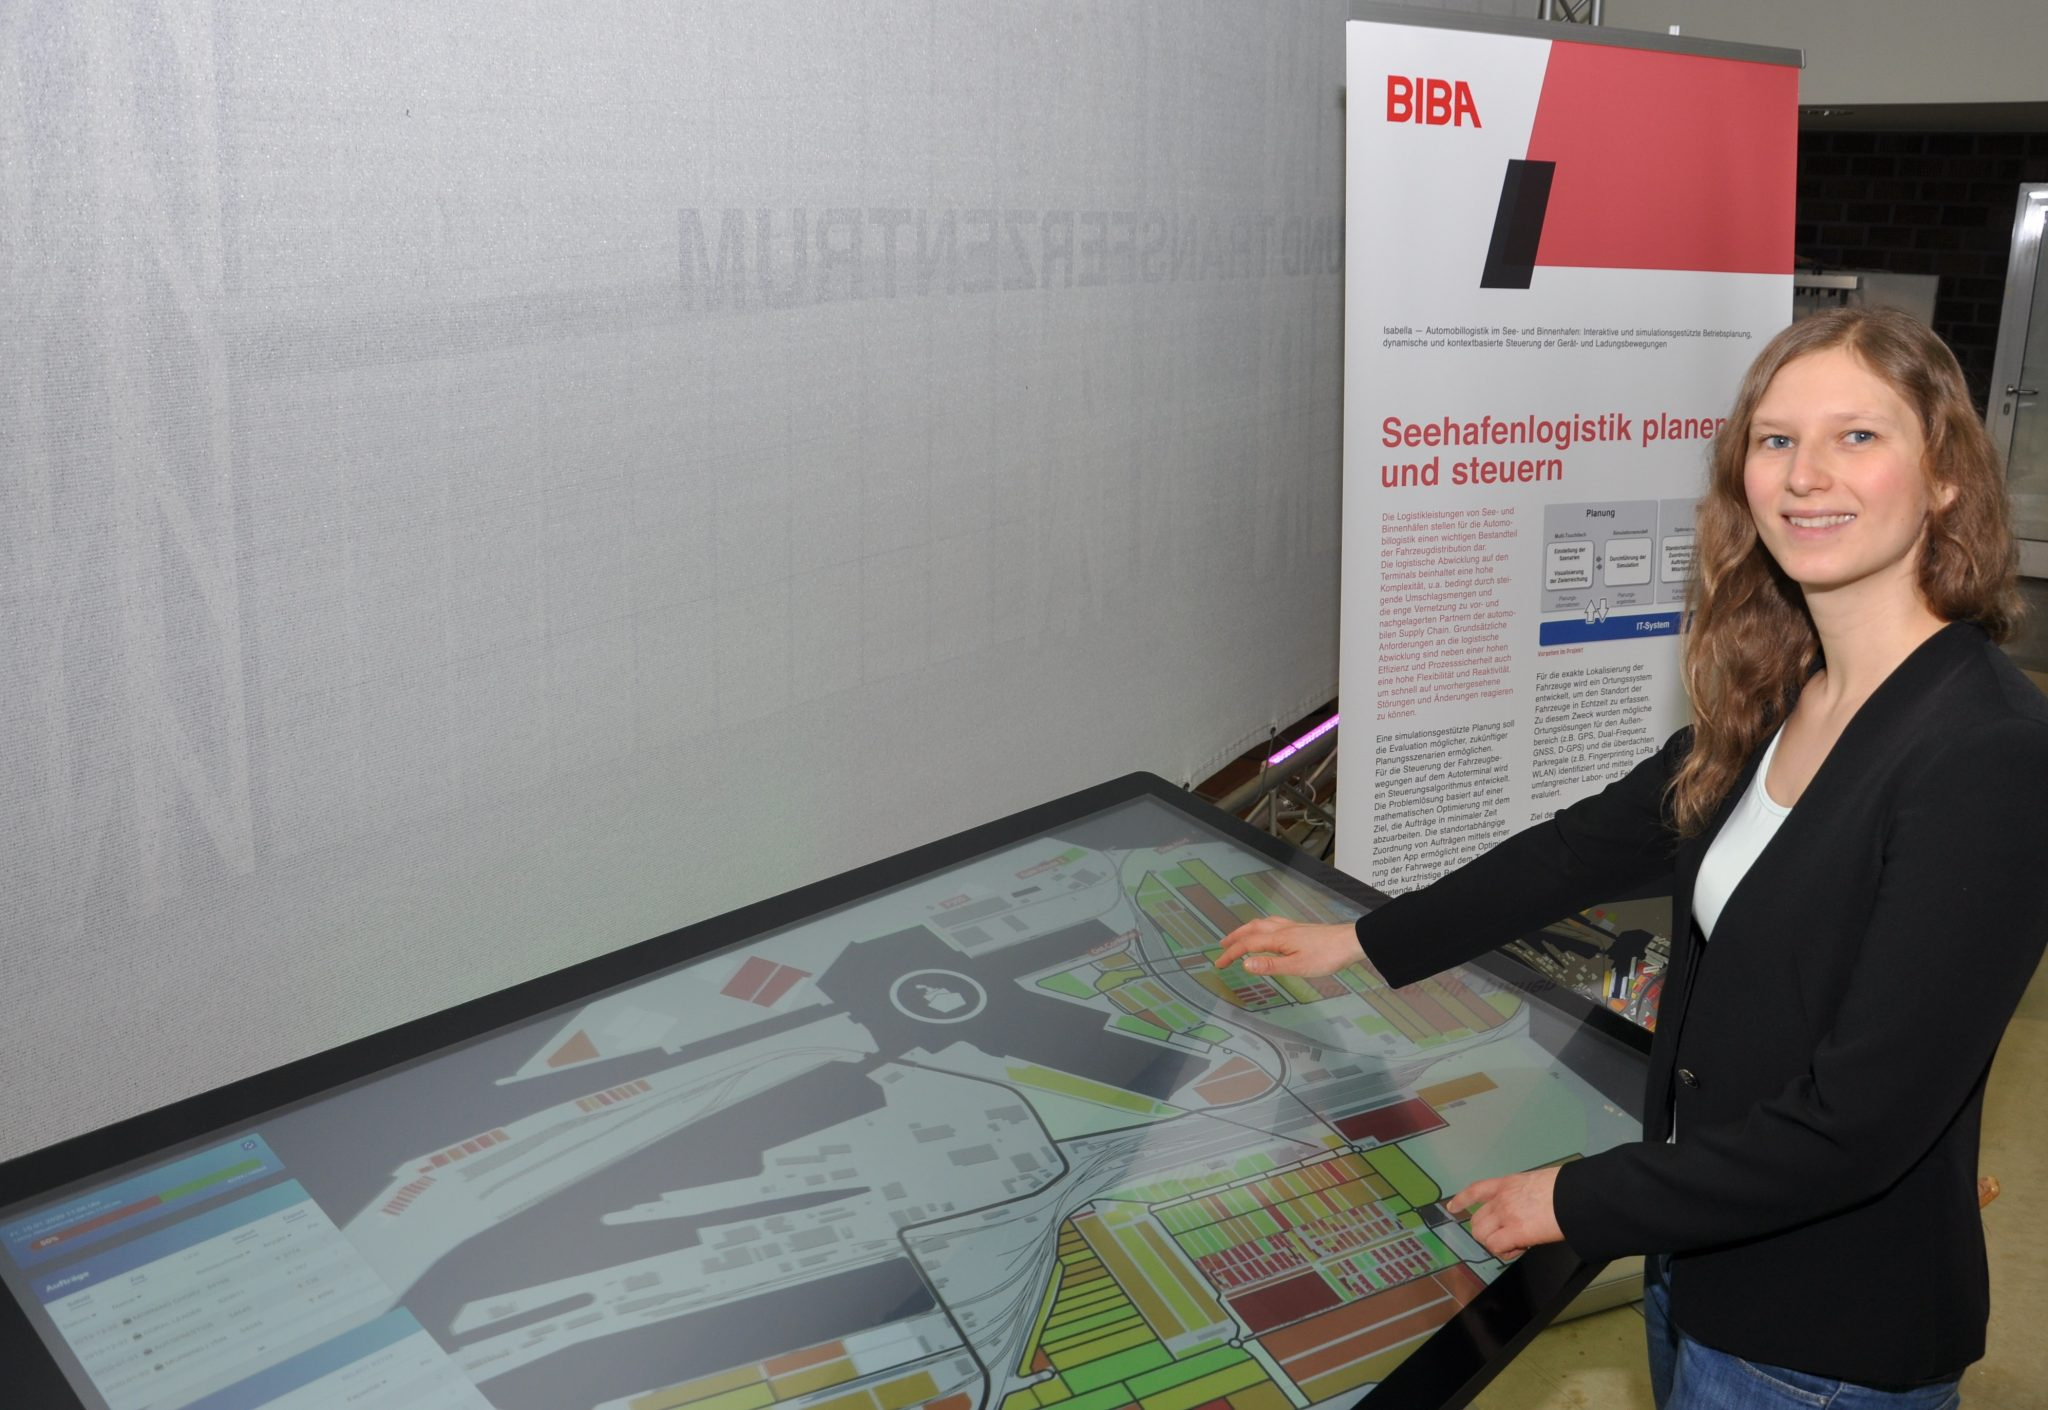 Marit Hoffmeyer am Multitouch-Tisch